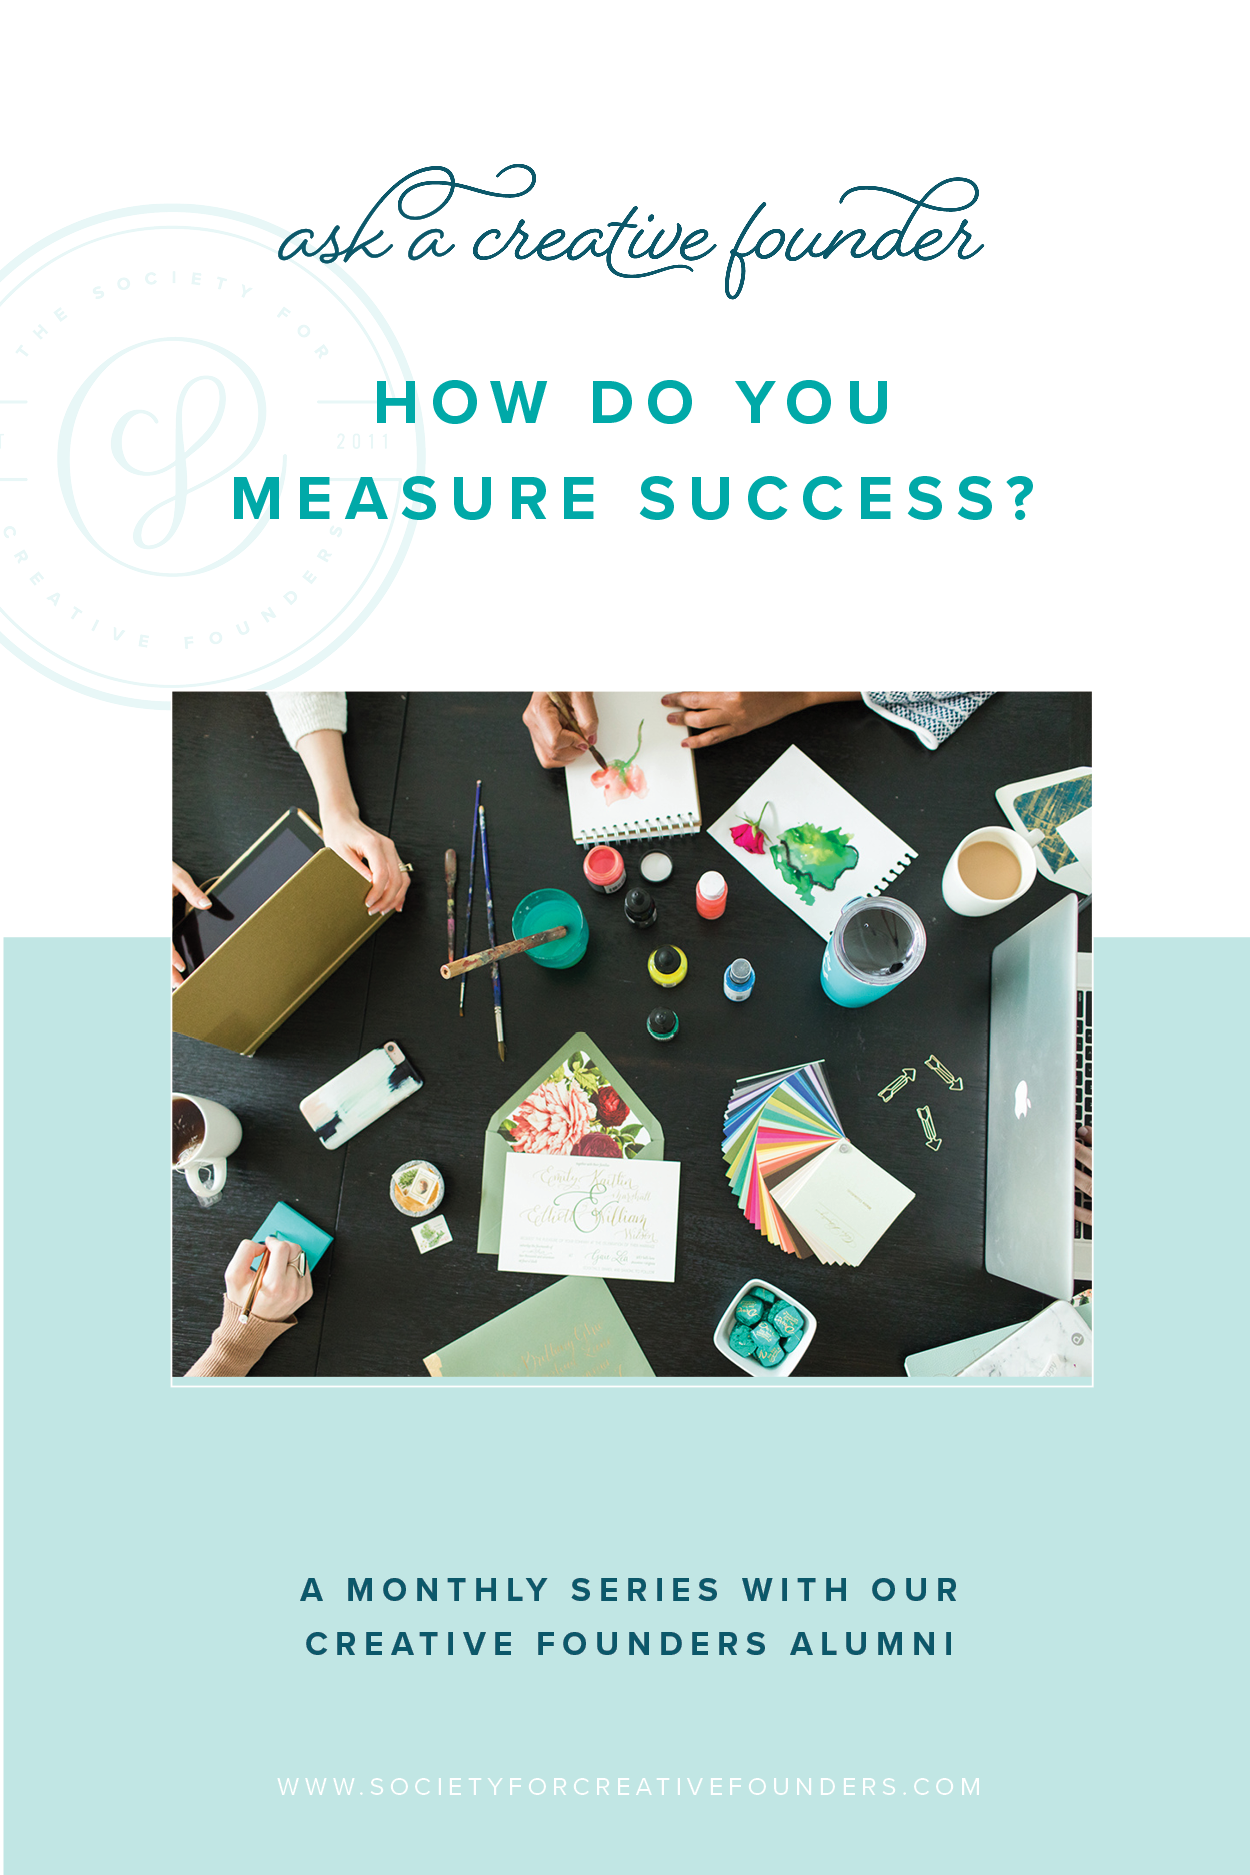 How to Measure Success - thoughts from Society for Creative Founders